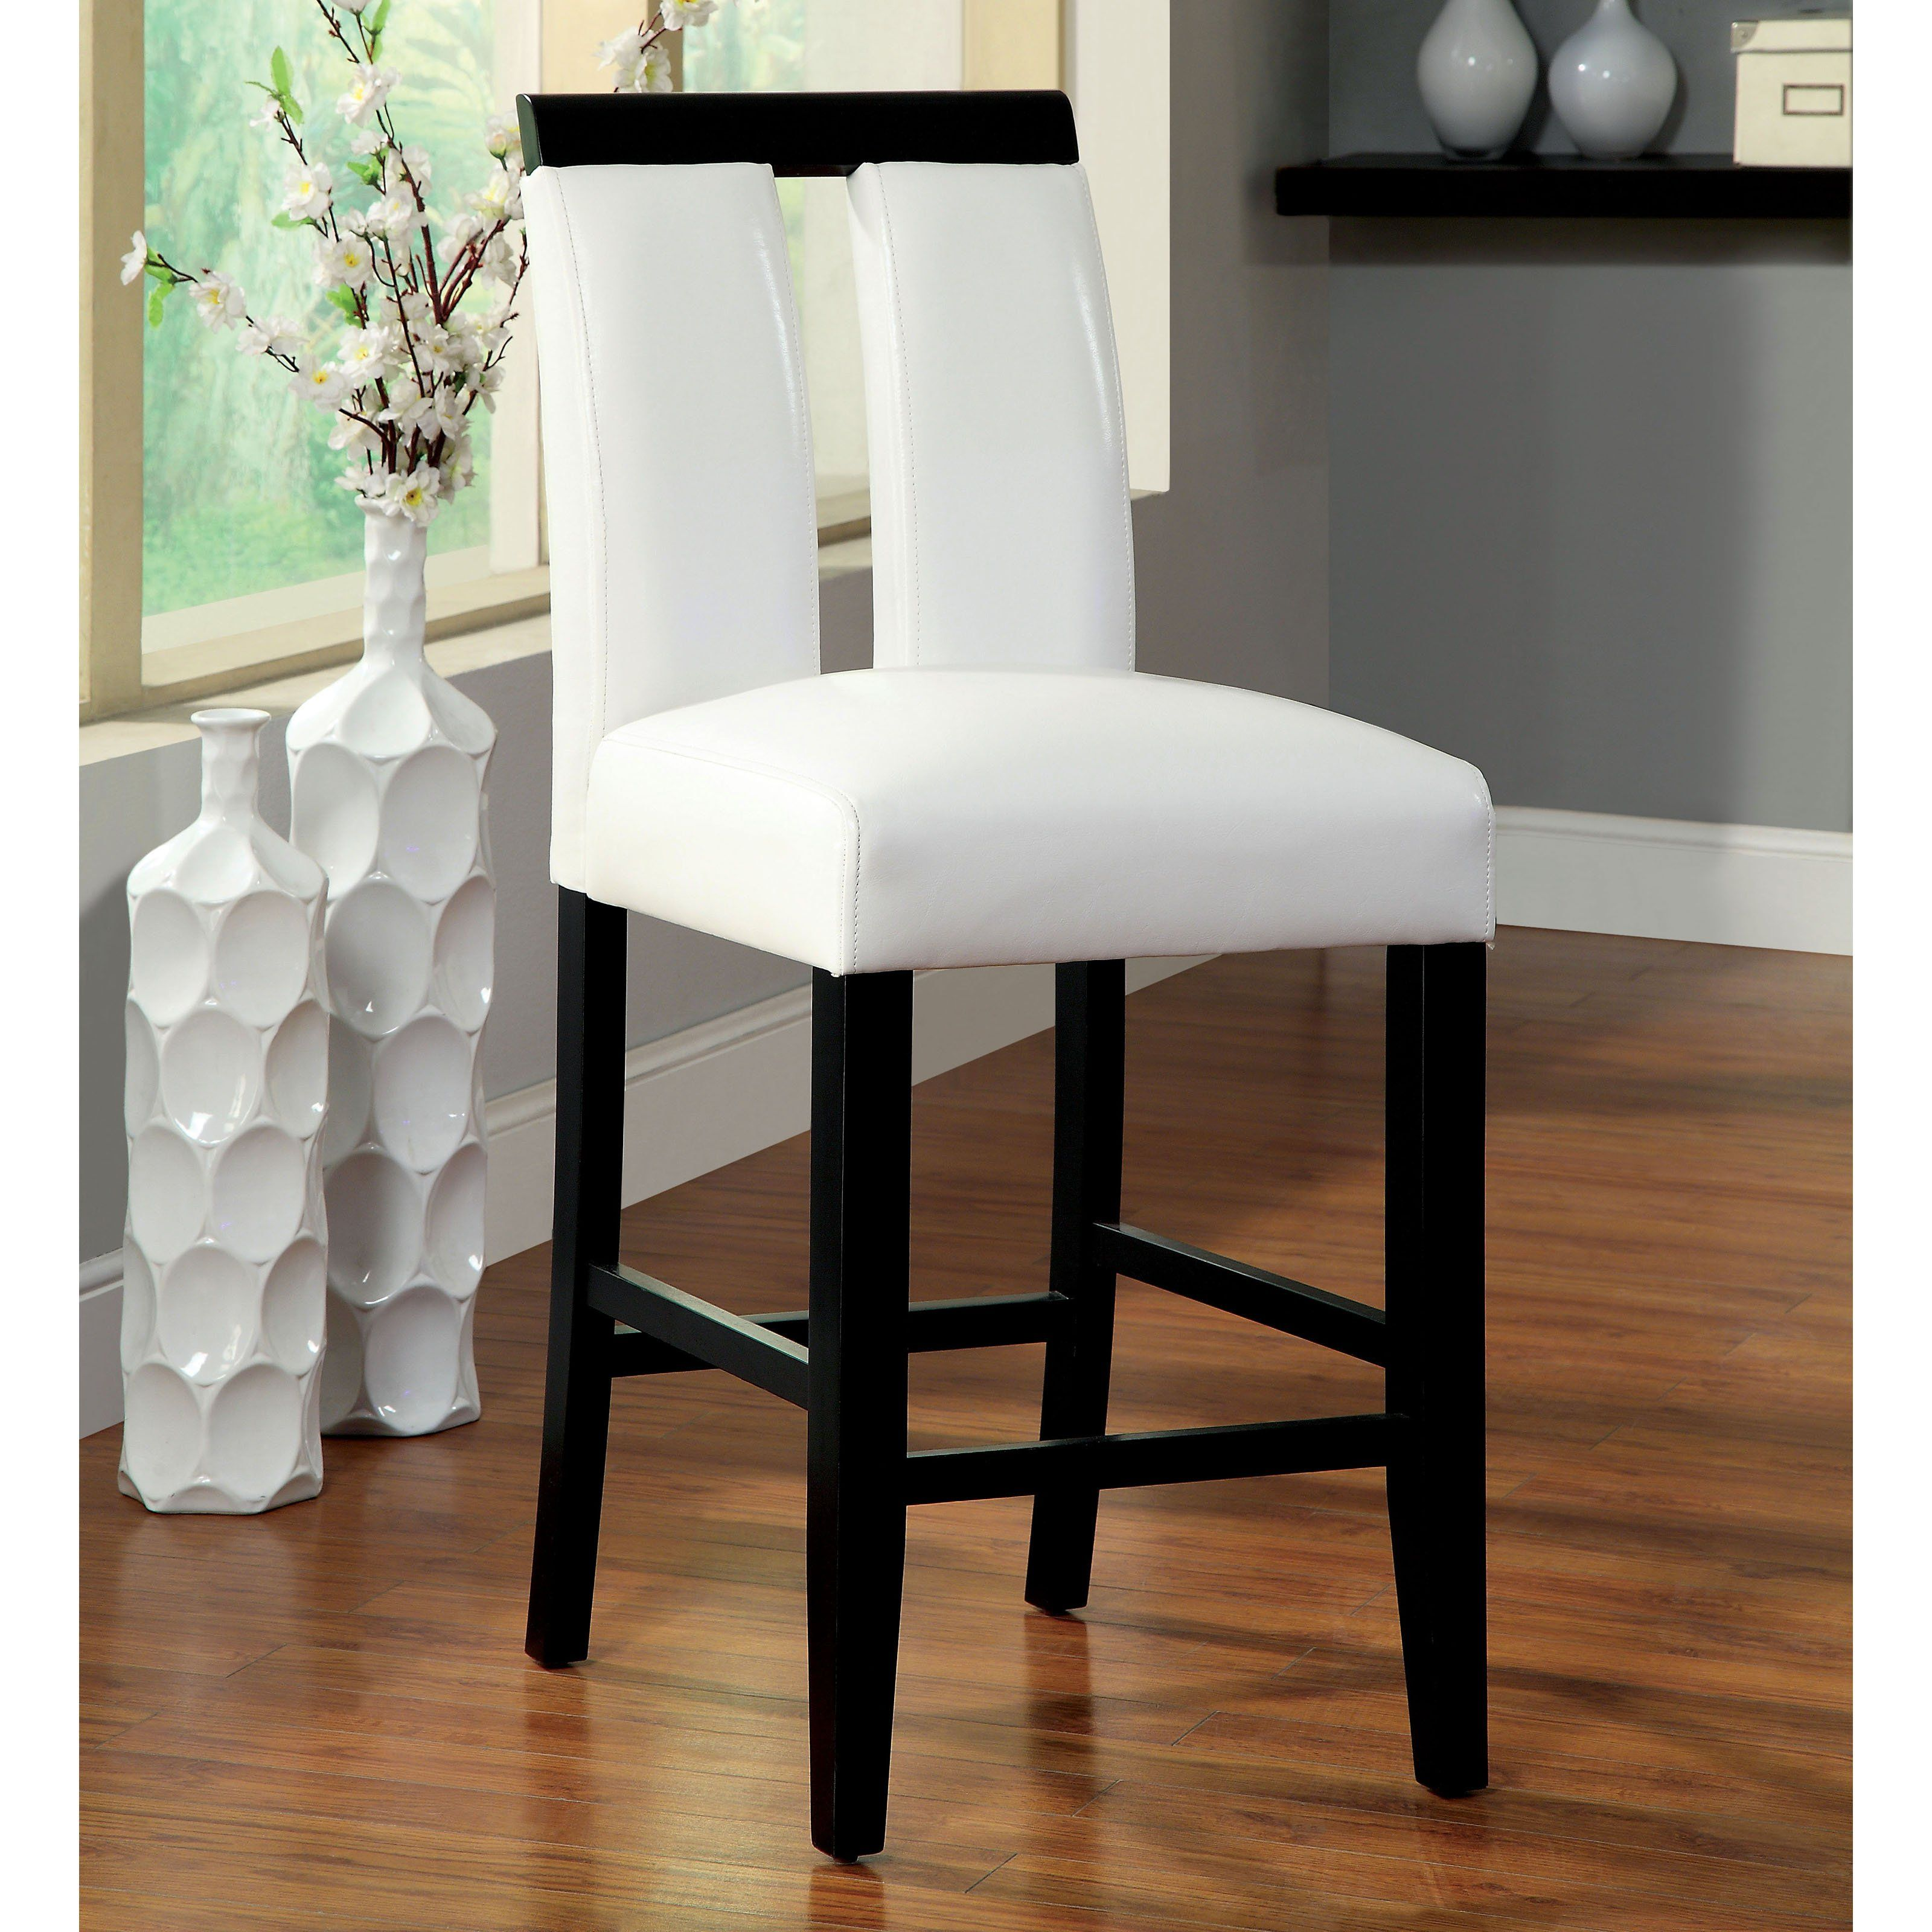 Exceptionnel Furniture Of America Luminate Contemporary Counter Height Chairs   Set Of 2  | From Hayneedle.